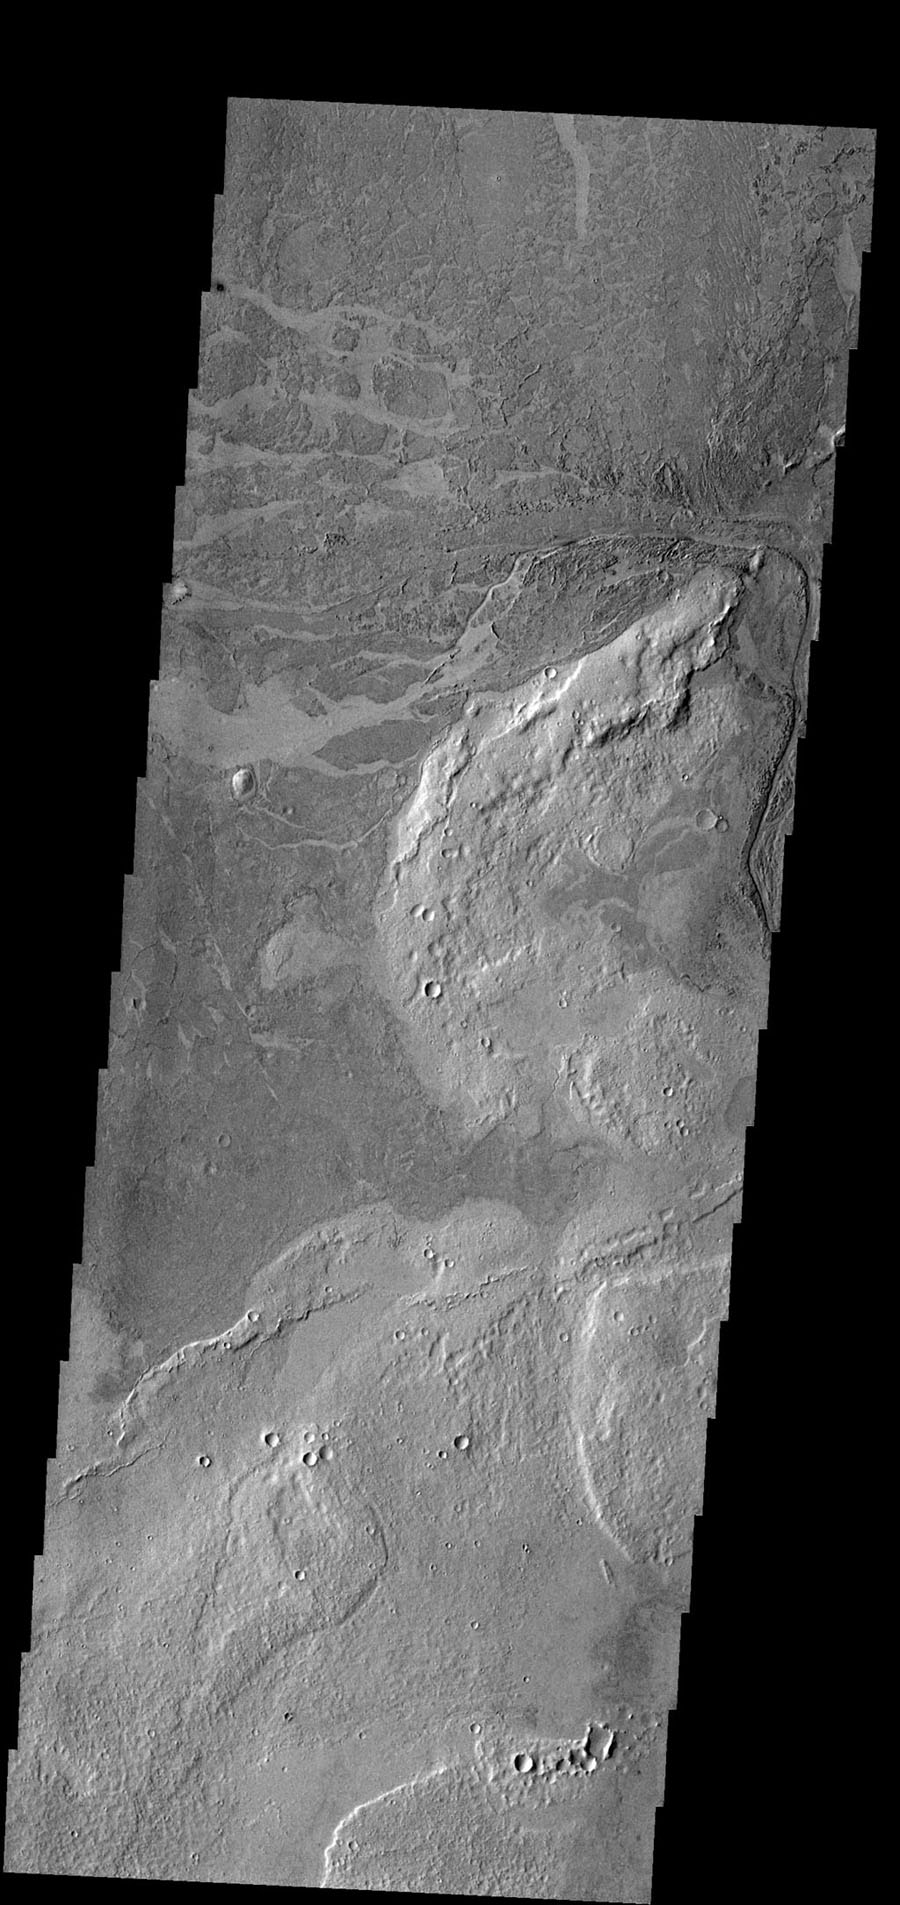 This image near Athabasca Valles shows thin plate of lava as seen by NASA's 2001 Mars Odyssey spacecraft. This style of lava flow is very different from other lava flows in the nearby Elysium and Tharsis volcanic complexes.